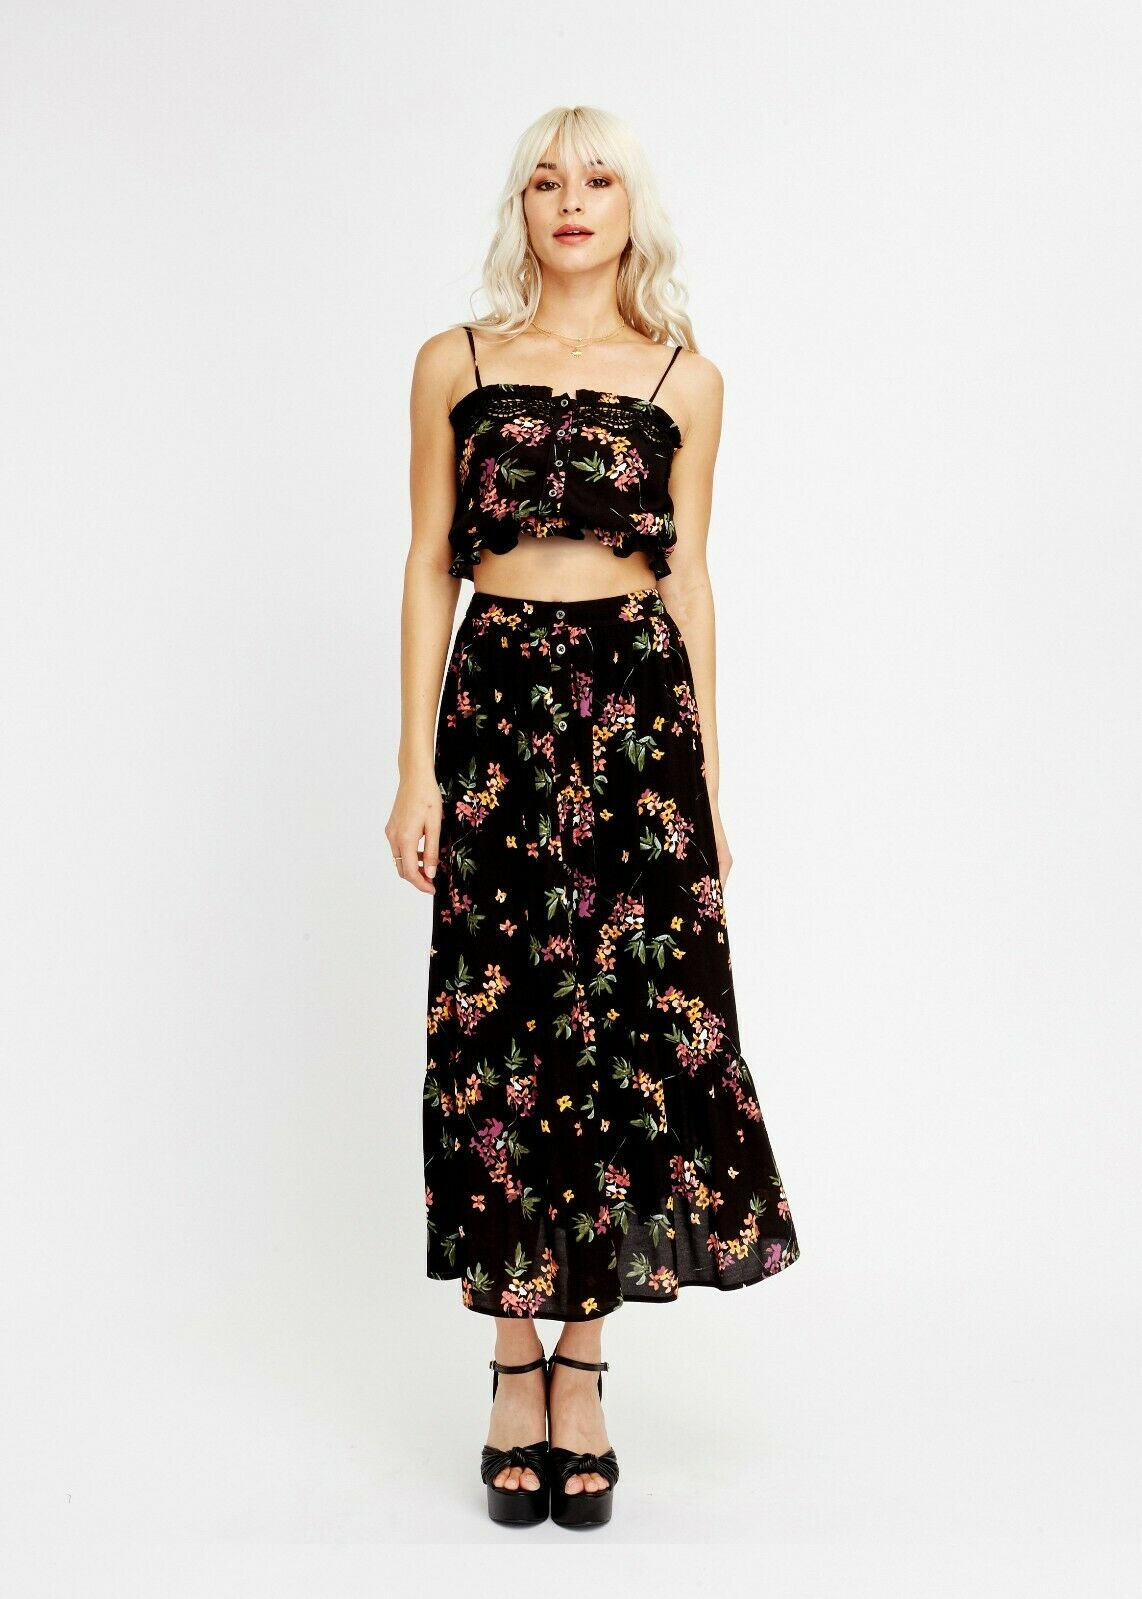 LOST + WANDER MAMBO NO 5 PRINTED TOP & SKIRT SET M